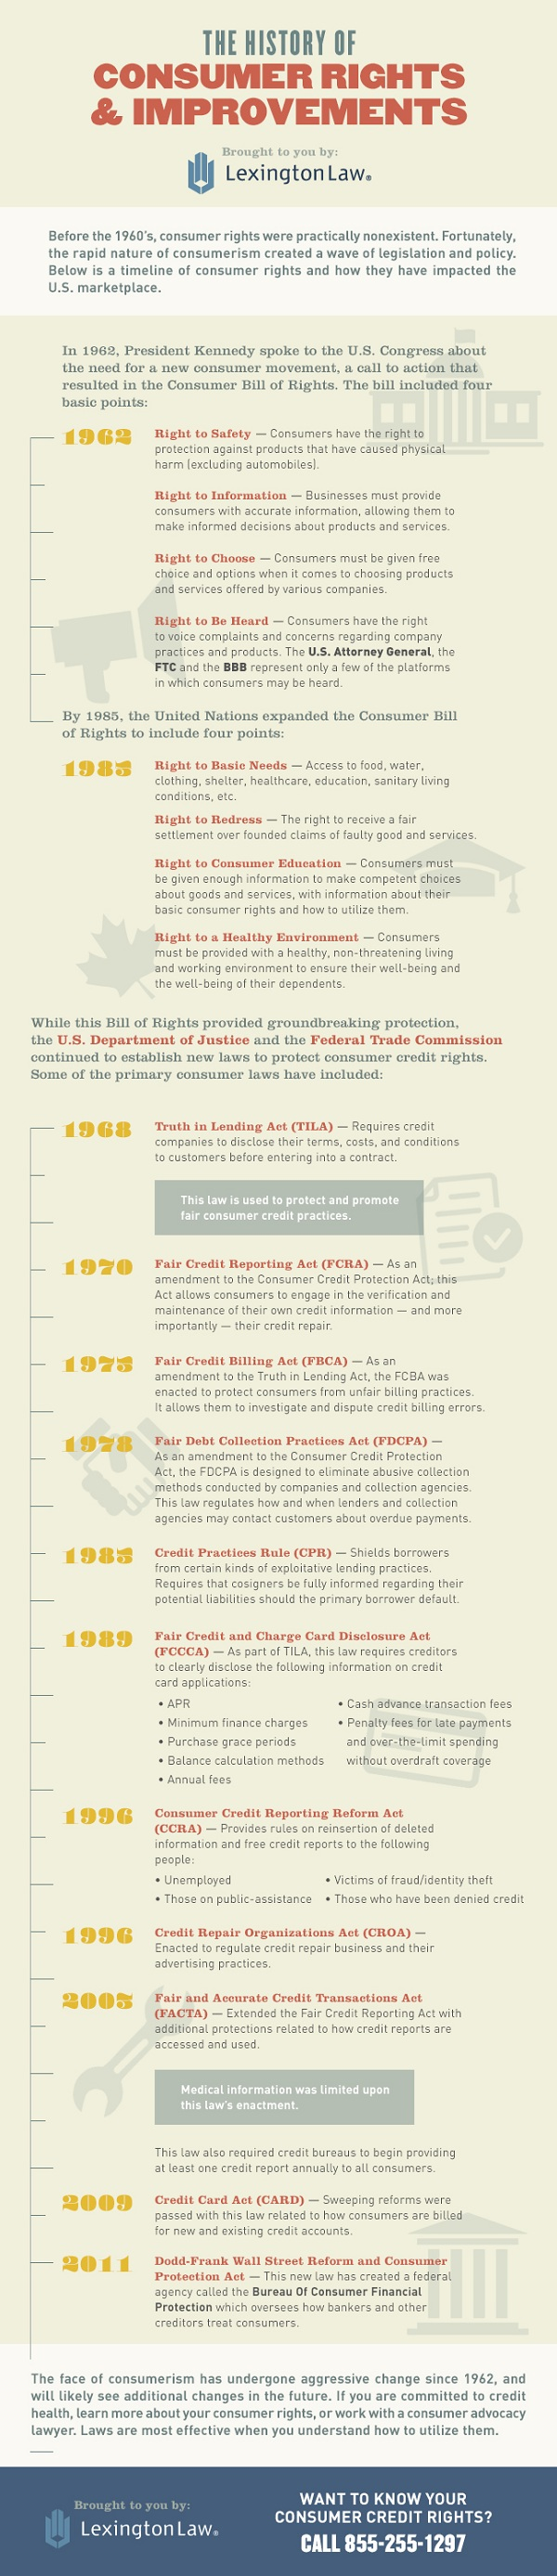 The-History-of-Consumer-Rights-And-Improvements.jpg